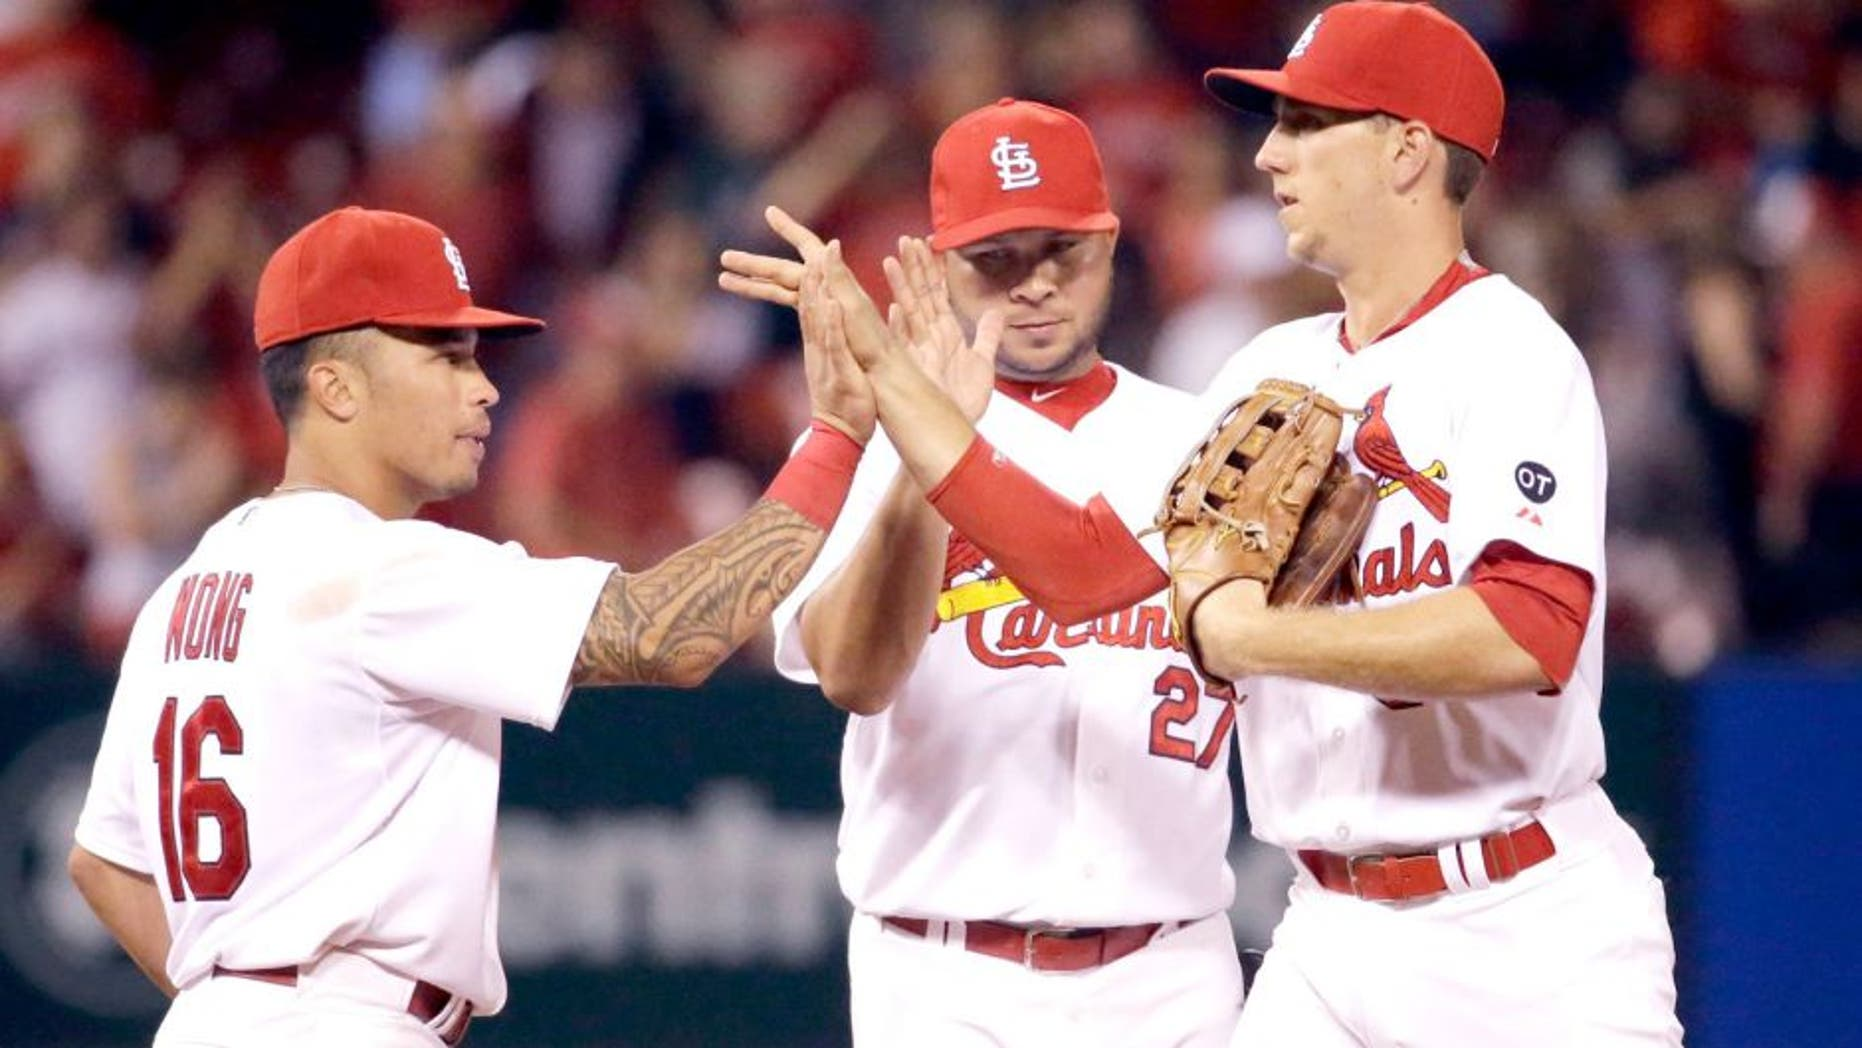 St. Louis Cardinals, from left to right, Kolten Wong, Jhonny Peralta and Stephen Piscotty celebrate following the Cardinals' 2-1 victory over the San Francisco Giants in a baseball game Monday, Aug. 17, 2015, in St. Louis. (AP Photo/Jeff Roberson)